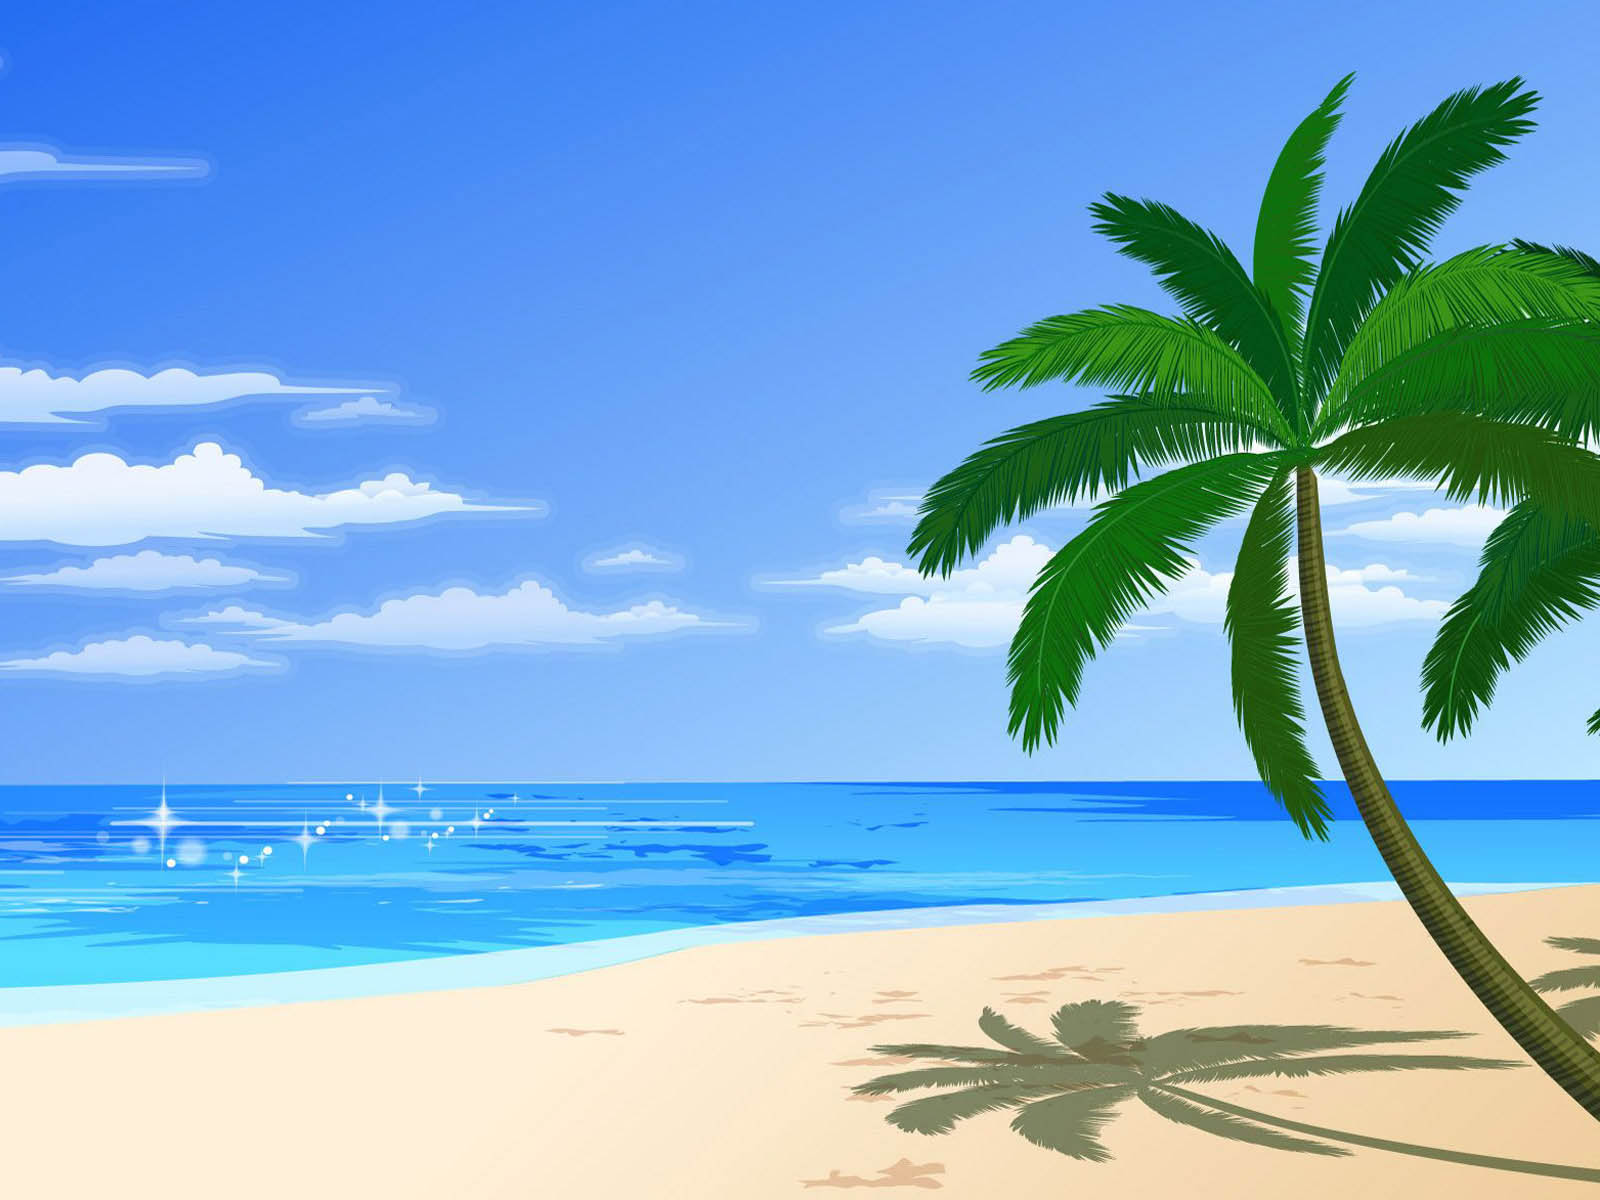 Clip Art Beach Scene Clipart free beach clipart kid tag vector wallpapers images photos pictures and backgrounds